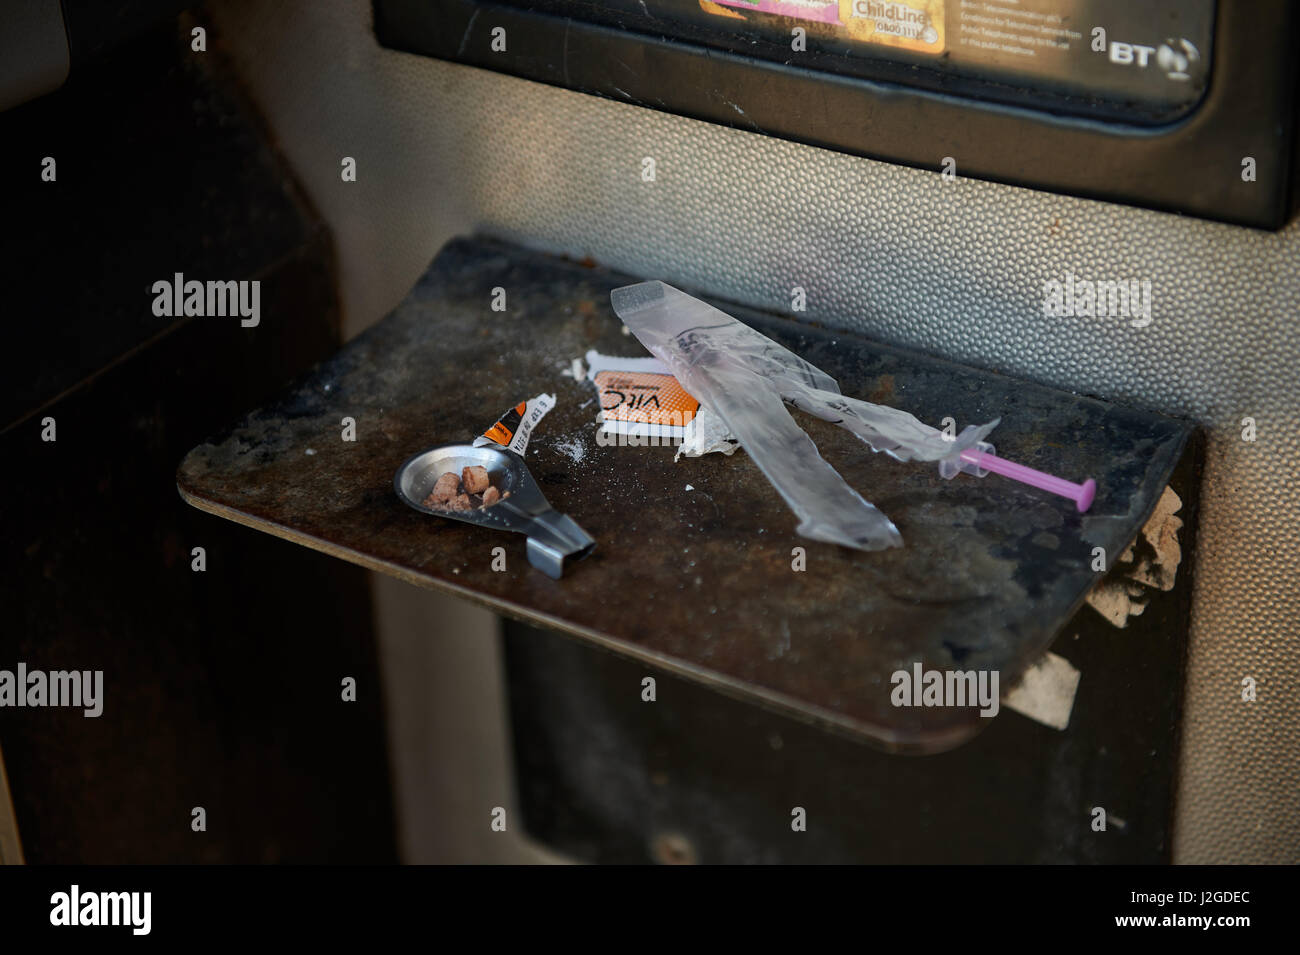 Debris left by a drug user in a phone box in Cardiff - Stock Image